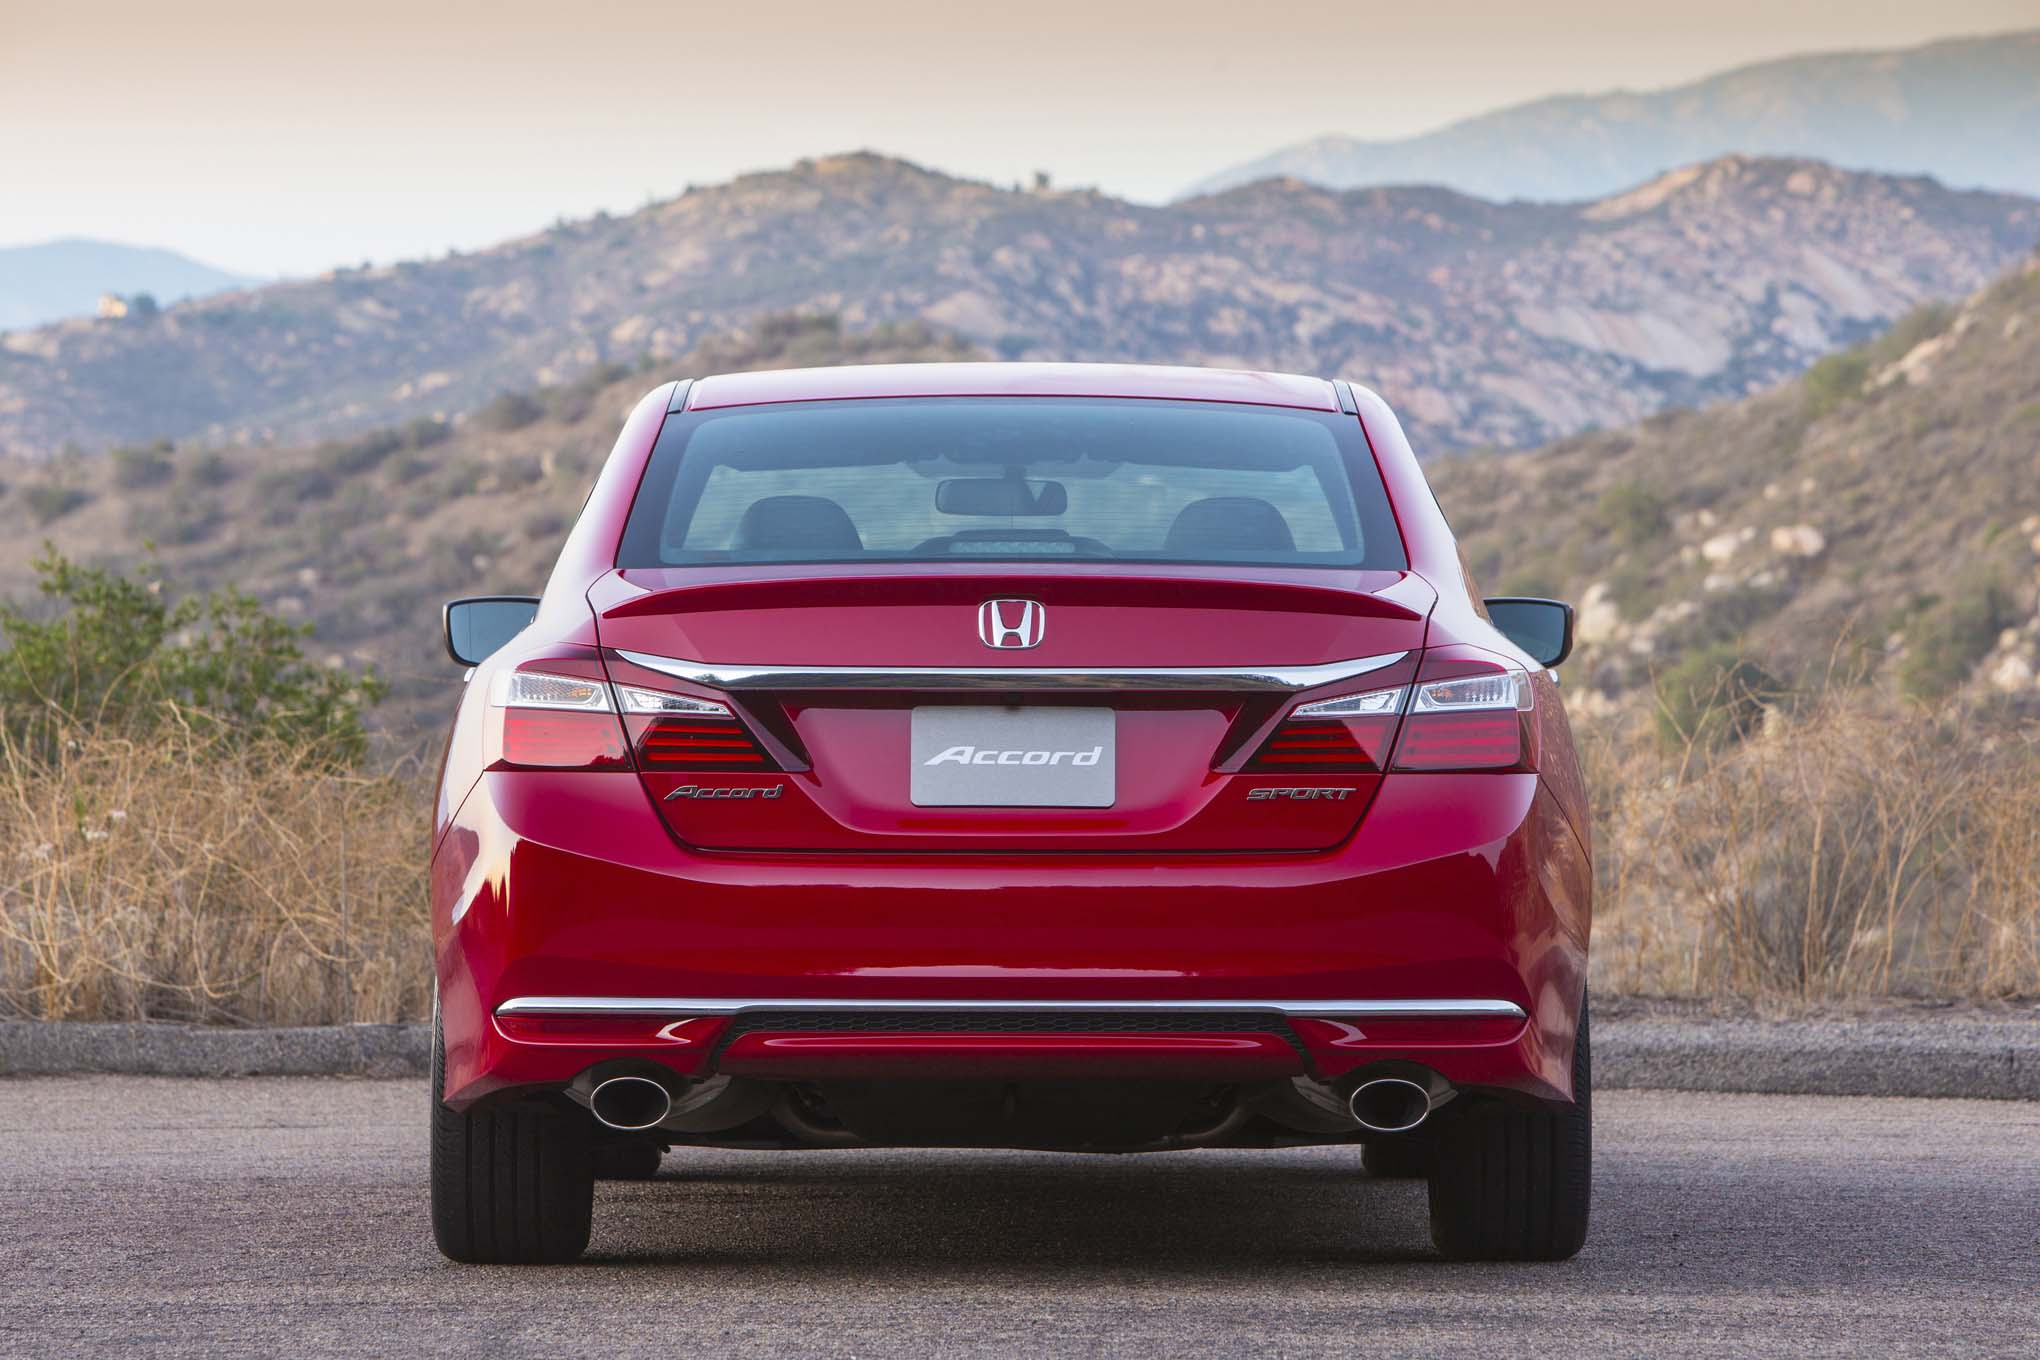 2017 Honda Accord Sport rear end | Automobile Magazine